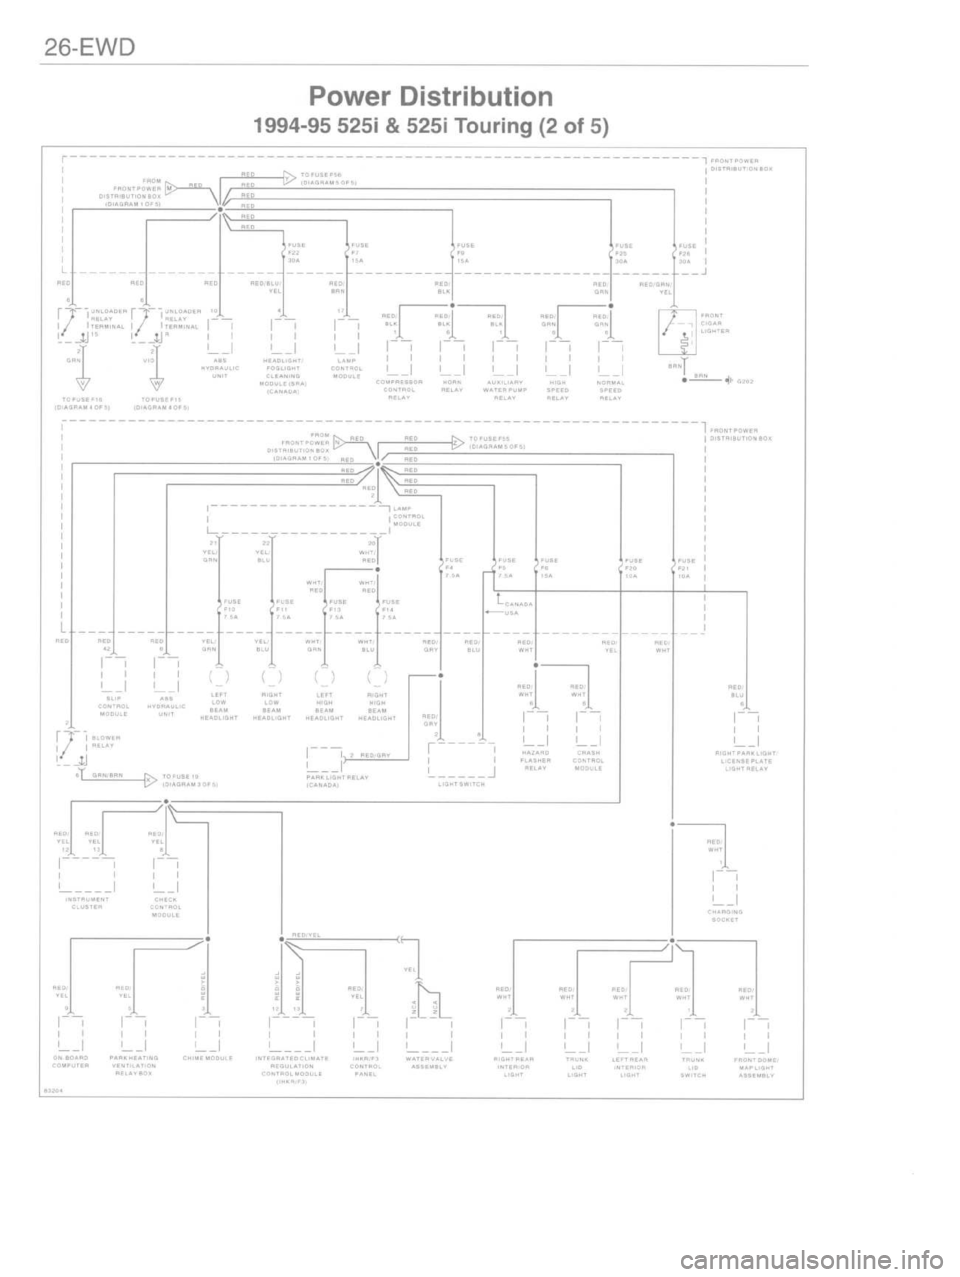 2005 Bmw X3 Vacuum Diagram on Bmw 330i Fuse Box